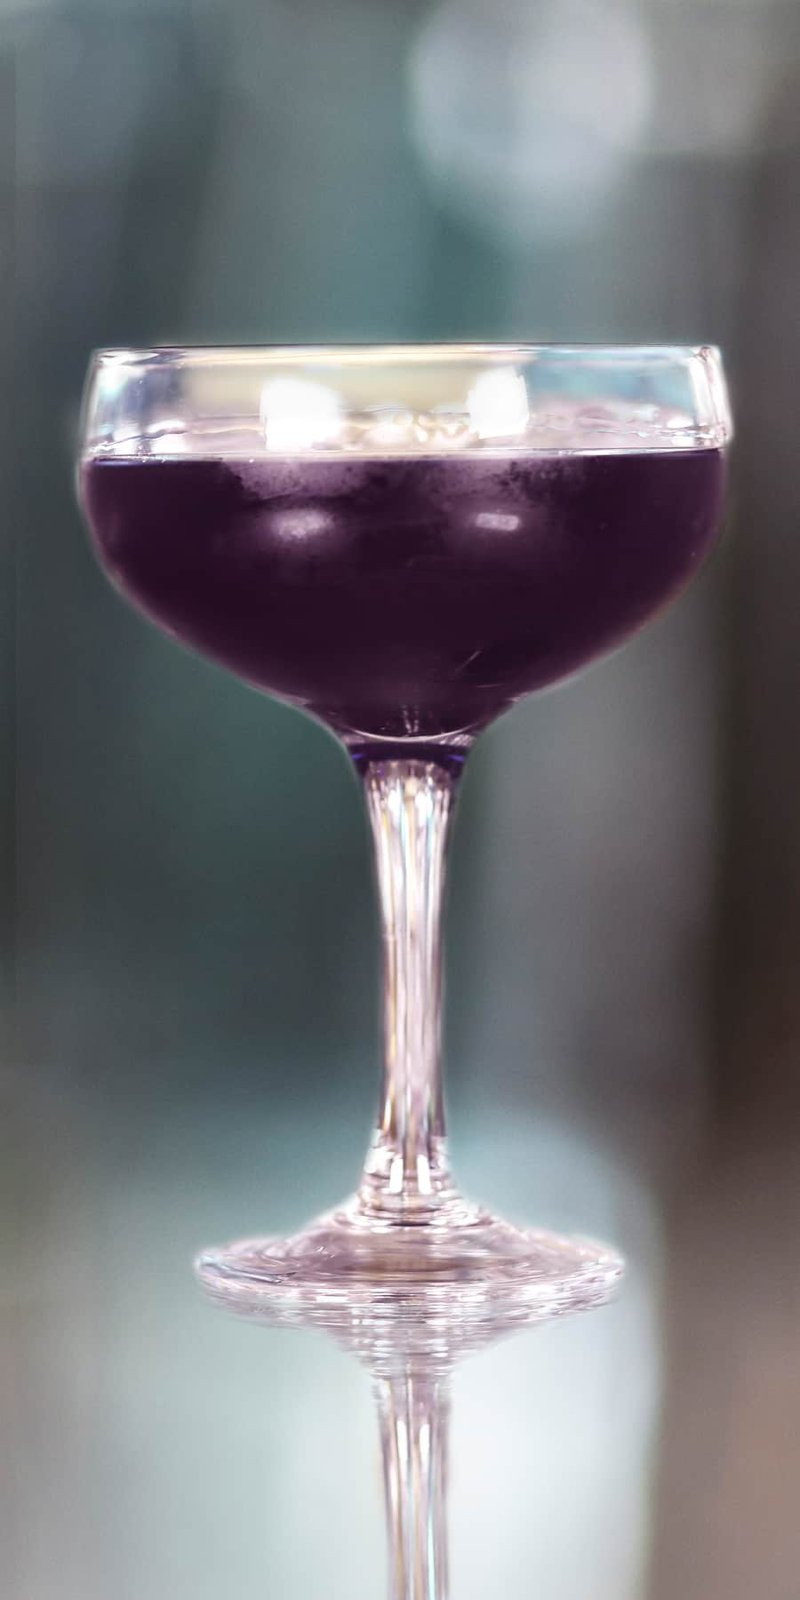 Blue Curacao Grenadine Vodka Cocktail